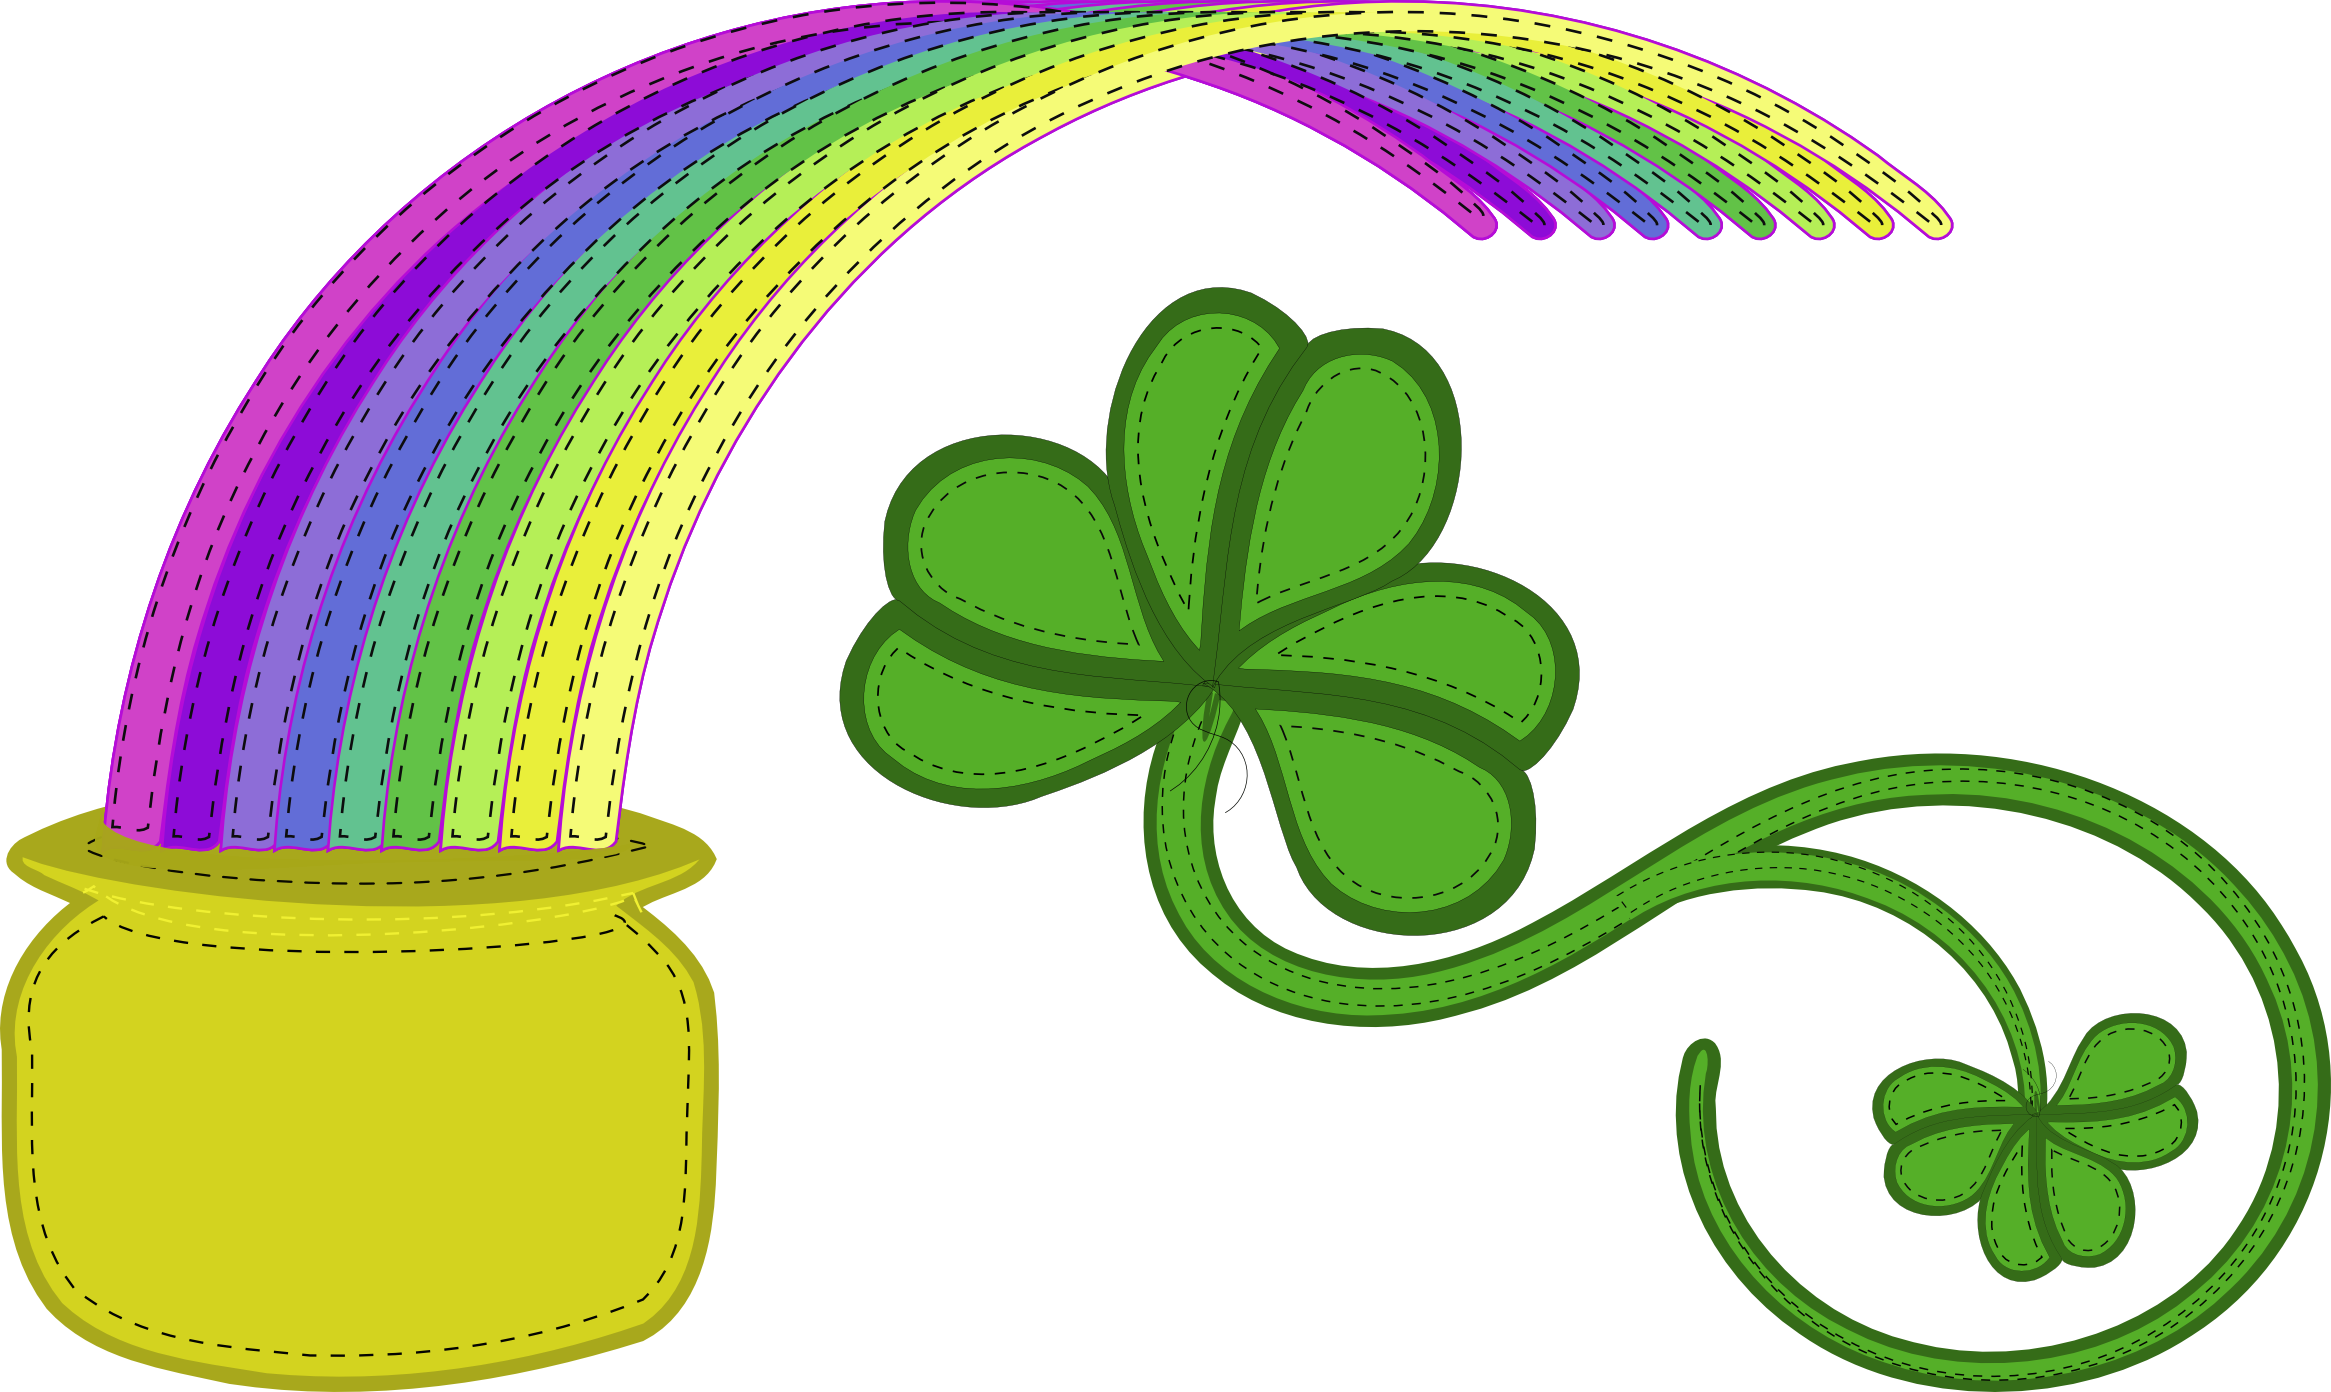 St. Patty's Clipart « Eye Draw It